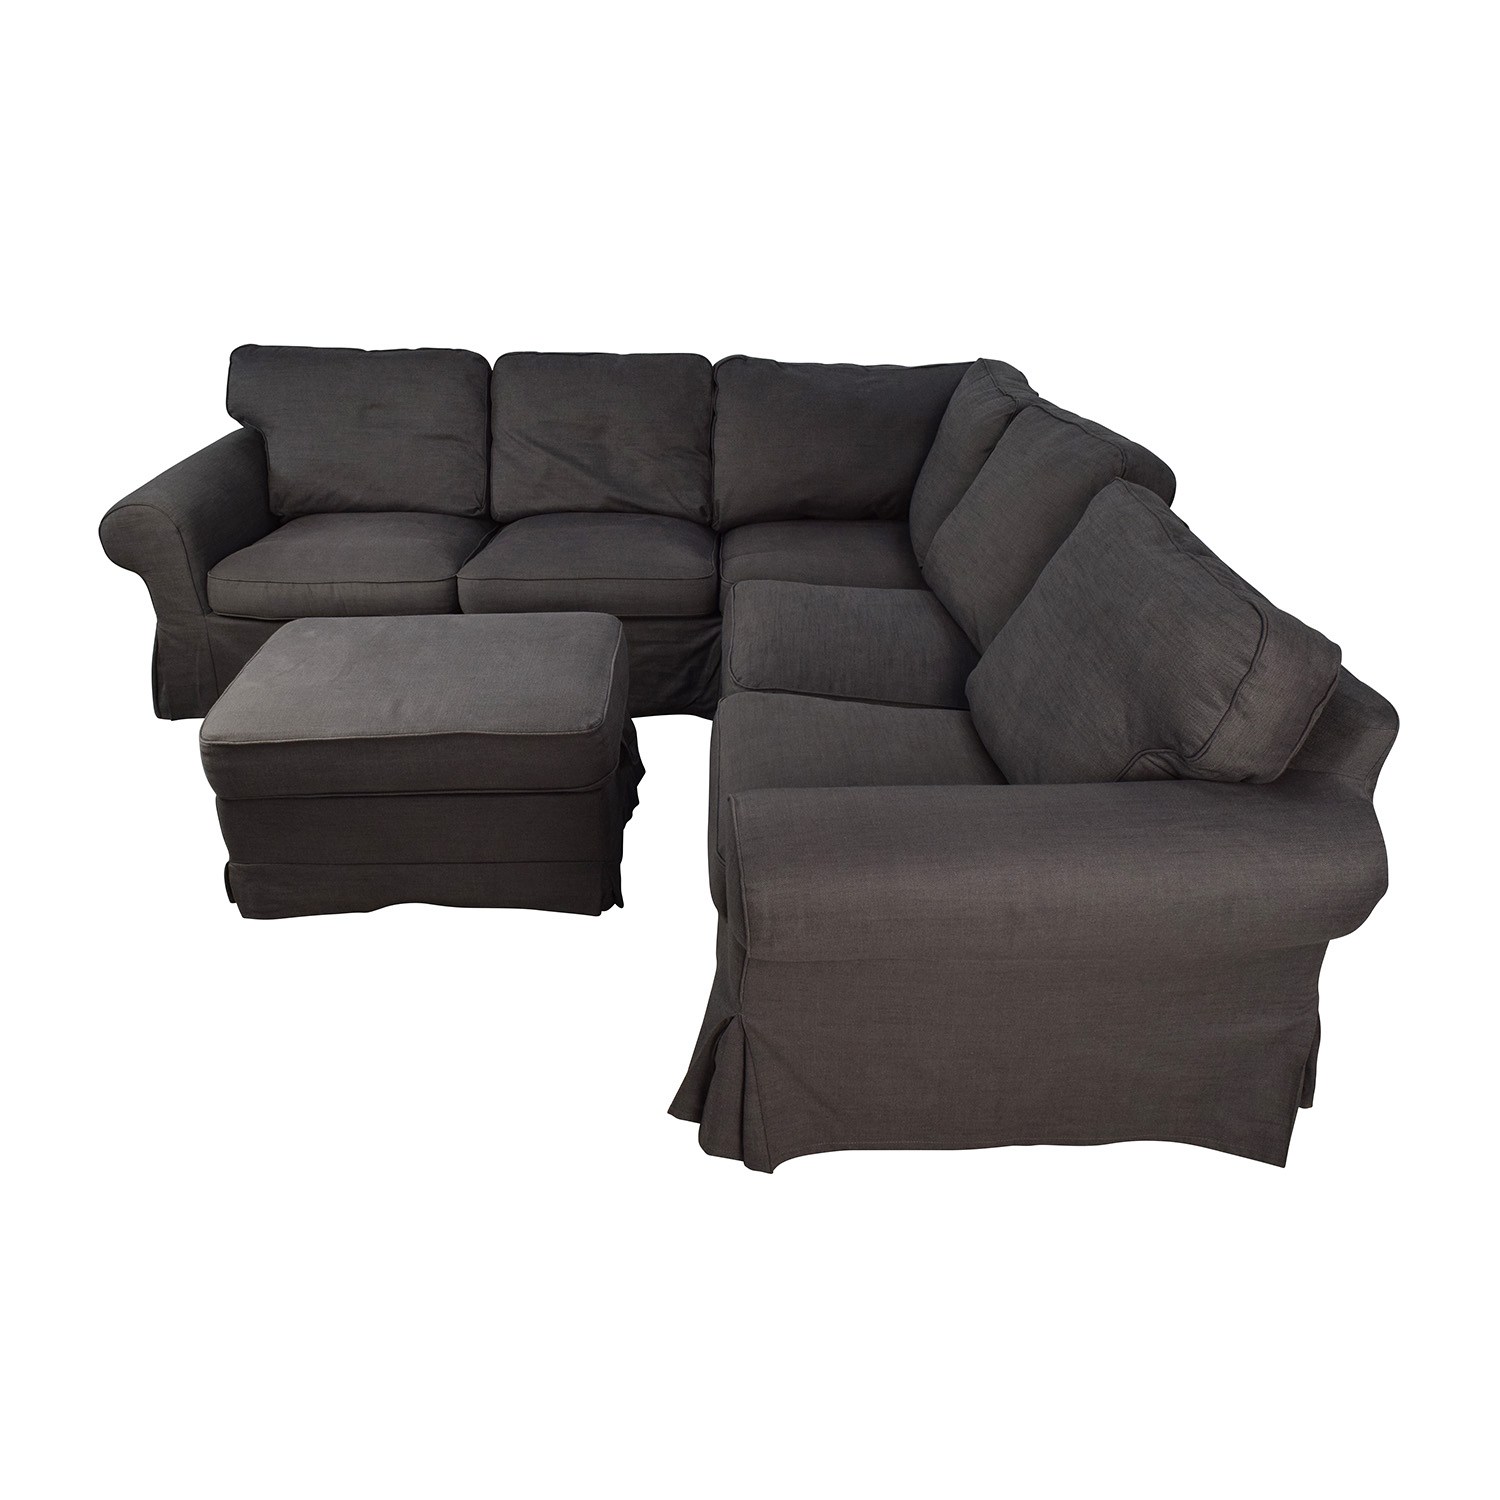 IKEA IKEA EKTORP Gray Corner Sectional with Ottoman on sale